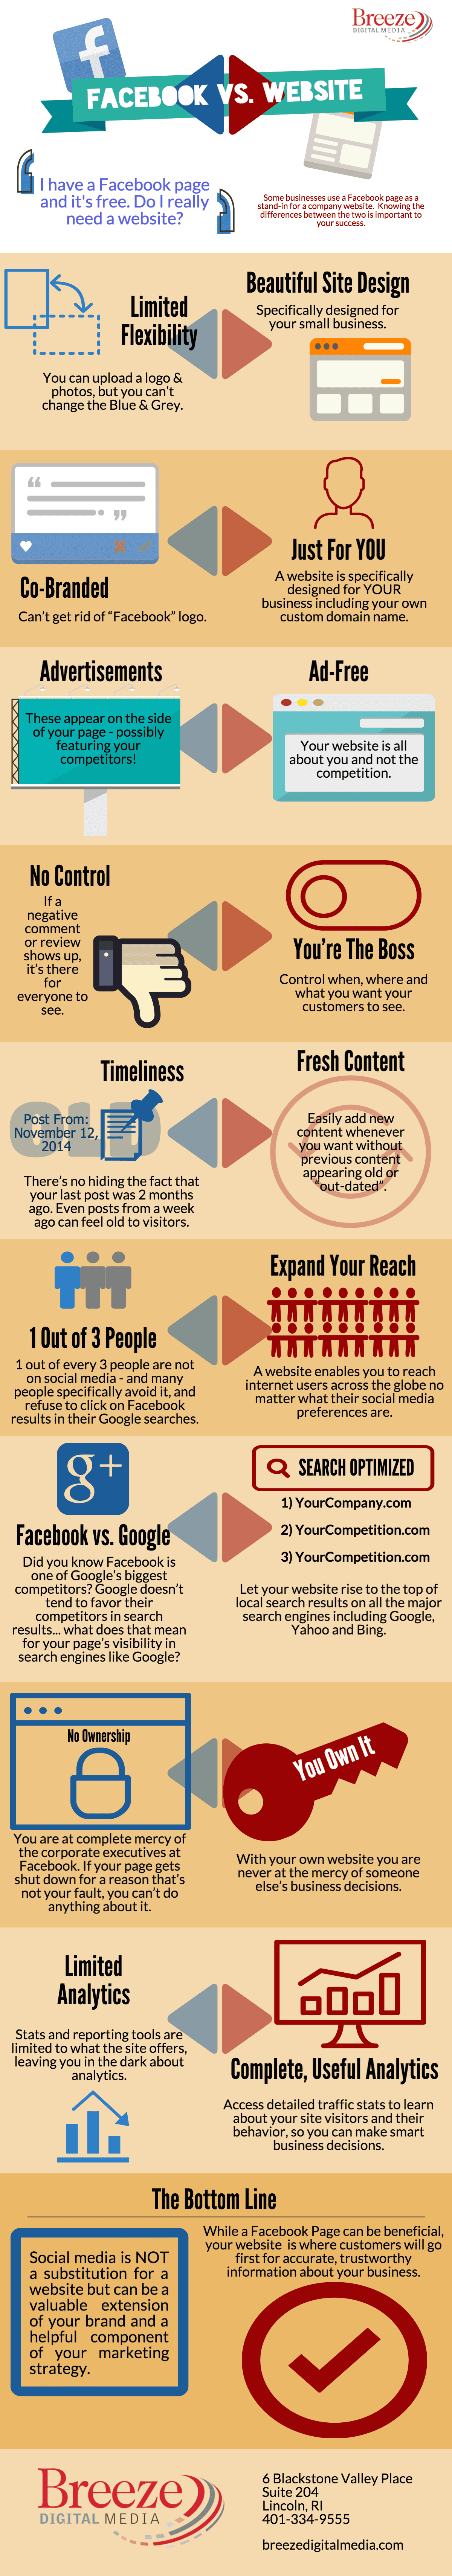 Facebook Business Page Vs Company Website Infographic Shared By IBeFound Facebook Website Builder NZ